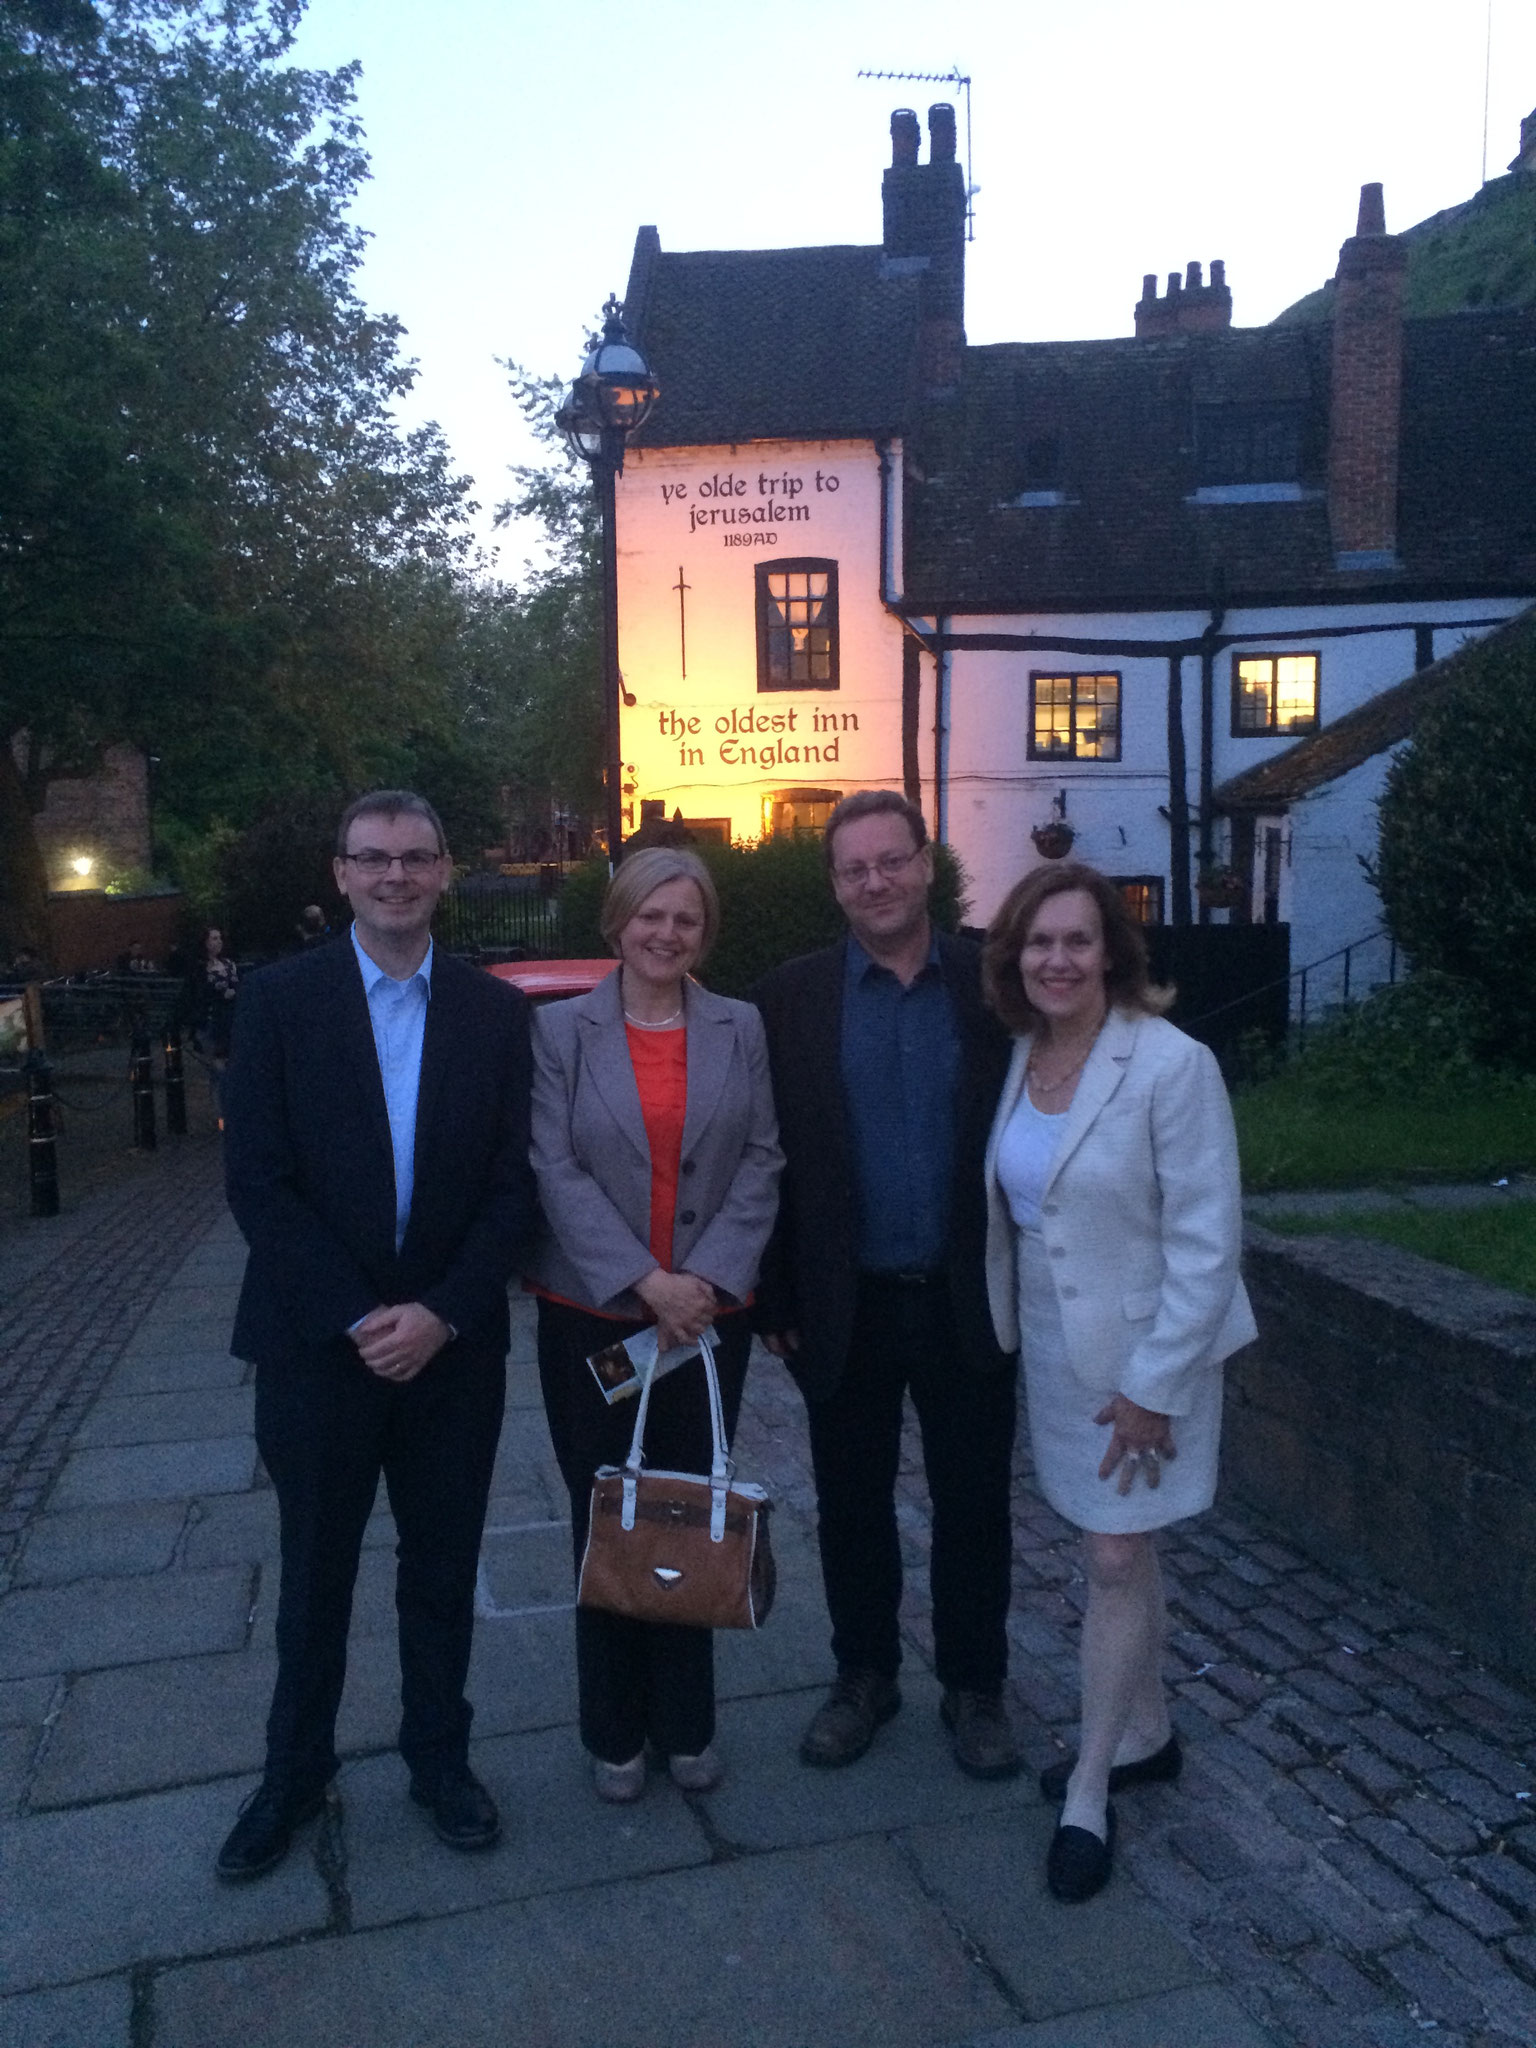 Nigel Mongan, Sharon McEnna, David Heery, Lorraine Gudas in front of the oldest tavern in England, Nottingham, England